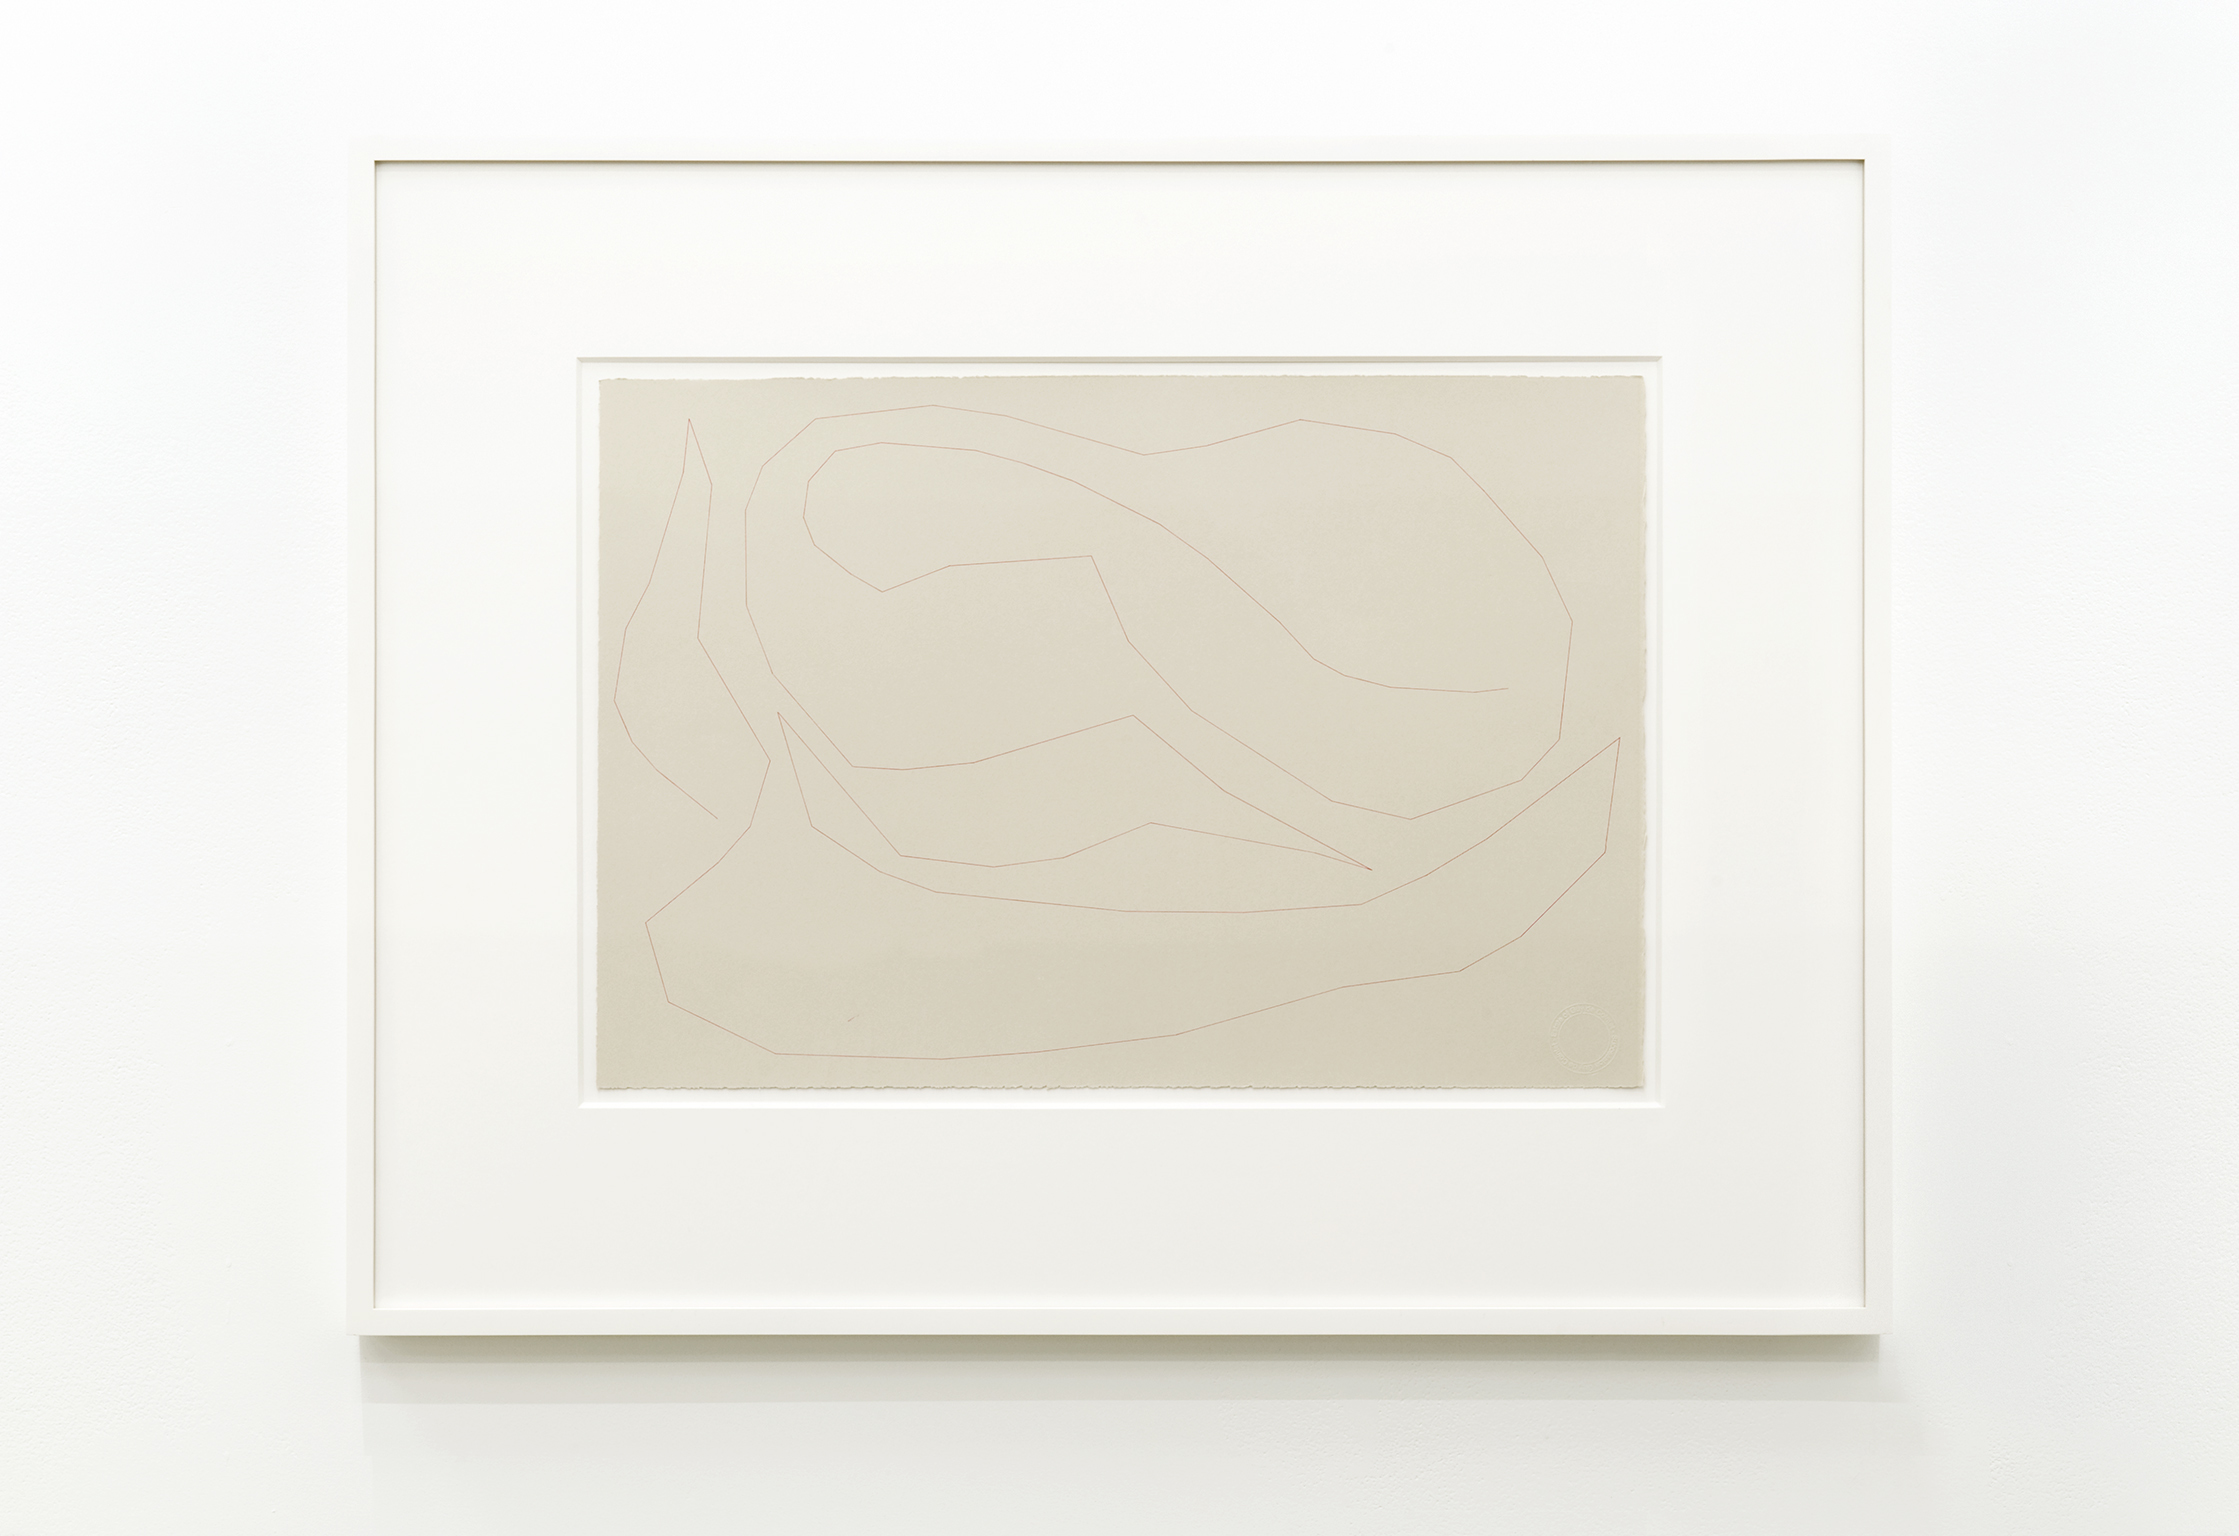 ​Guy de Cointet, Untitled, c. 1982, ink on paper, 15 x 22 in. (38 x 56 cm) by